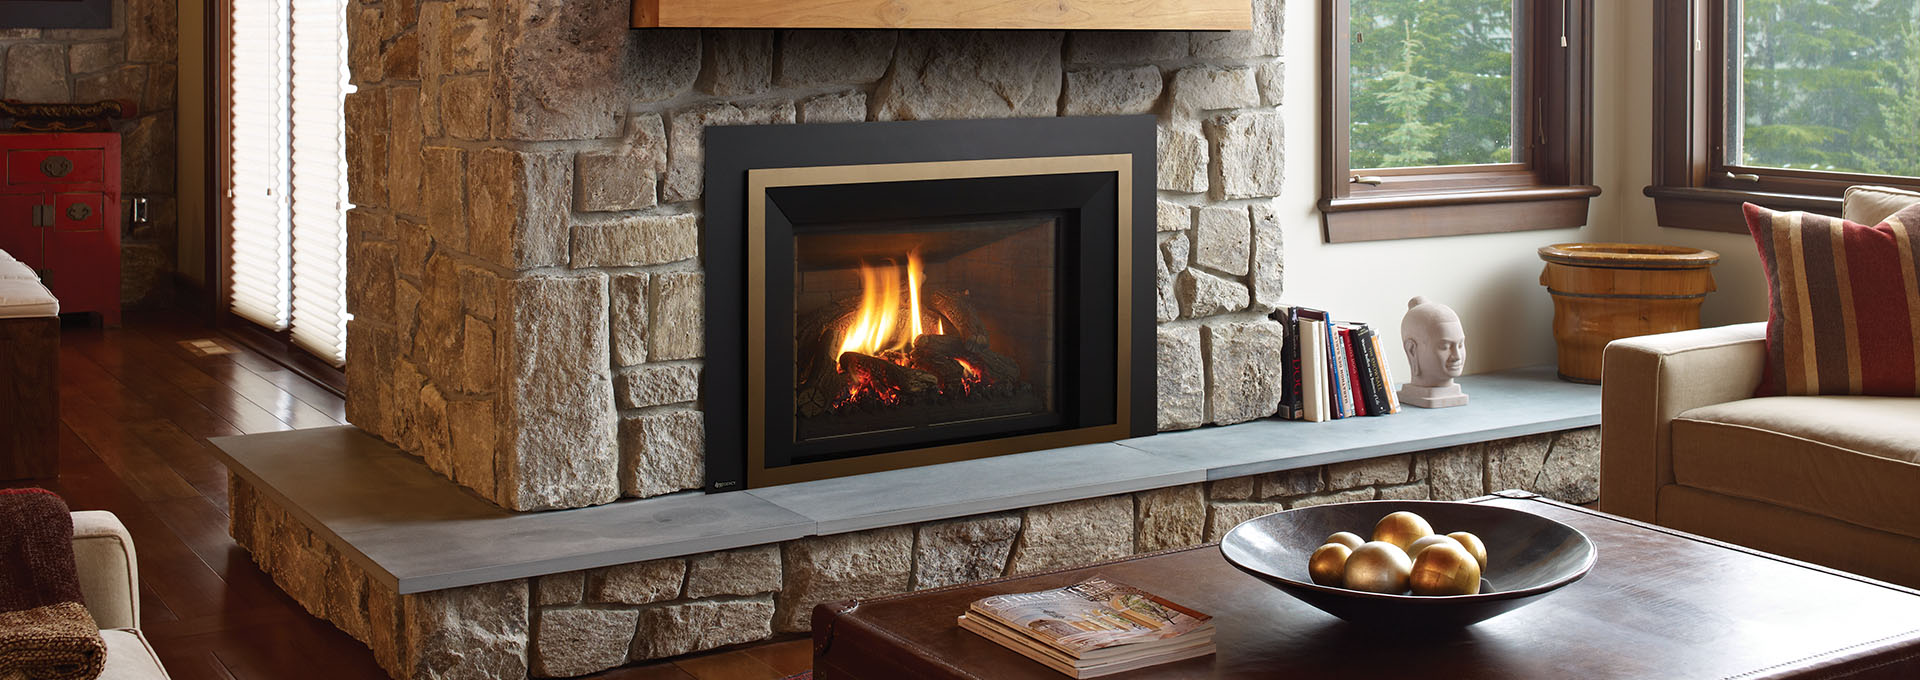 Avalon Gas Fireplace Inserts Should You Spring For An Electric Or Gas Fireplace Avalon Homes